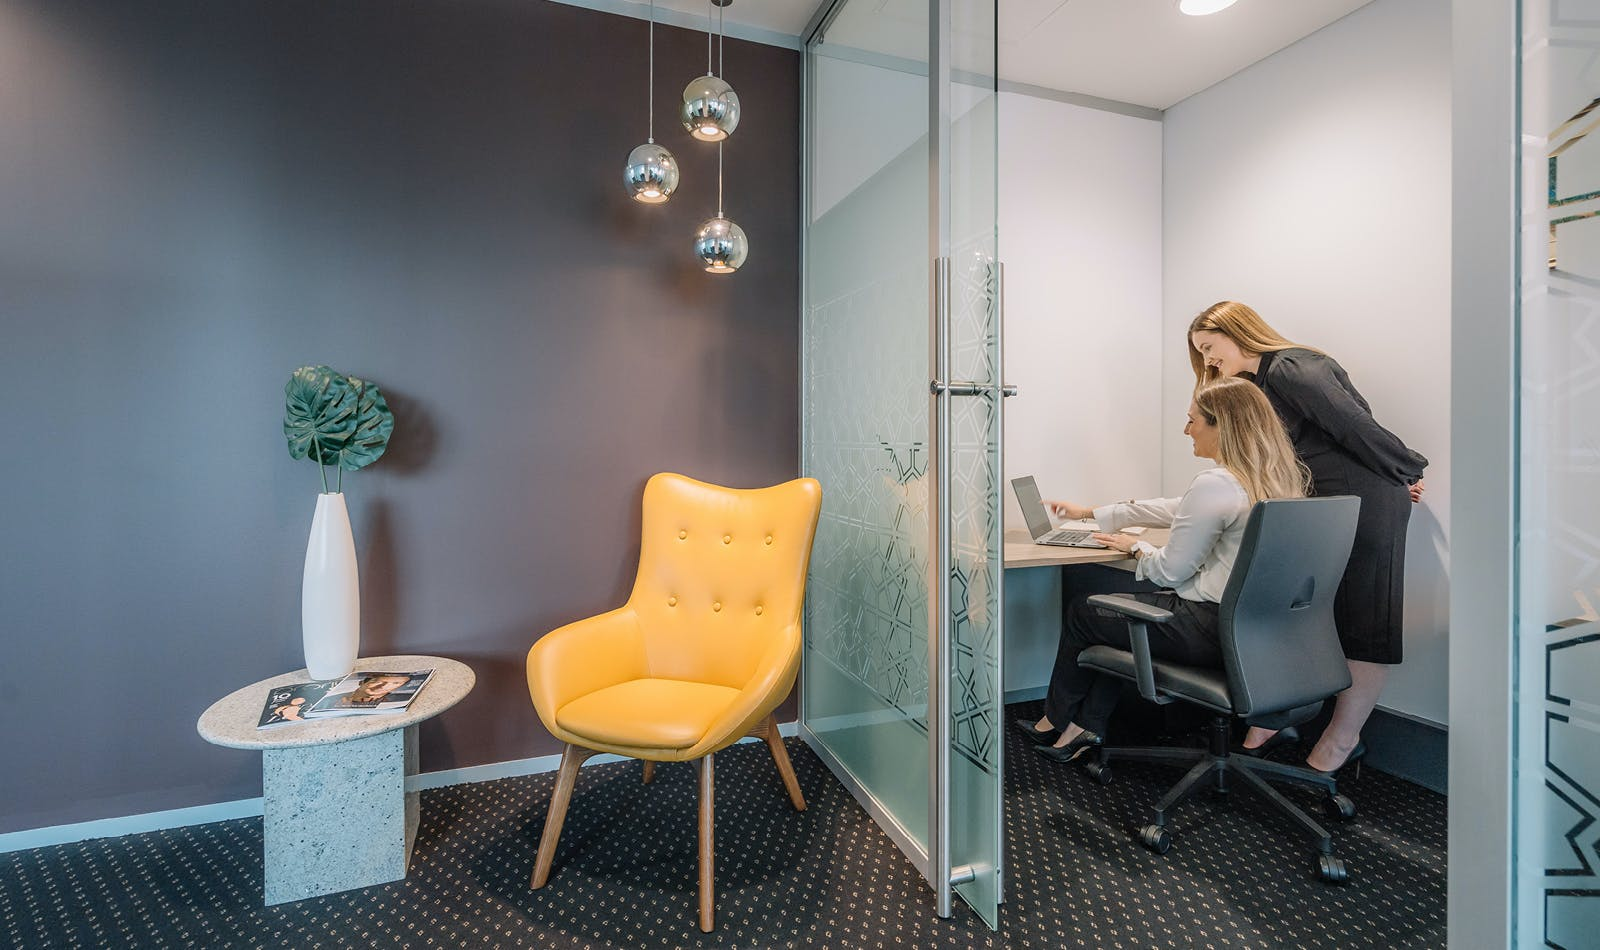 Day Suite 2, meeting room at Deloitte Building, image 1